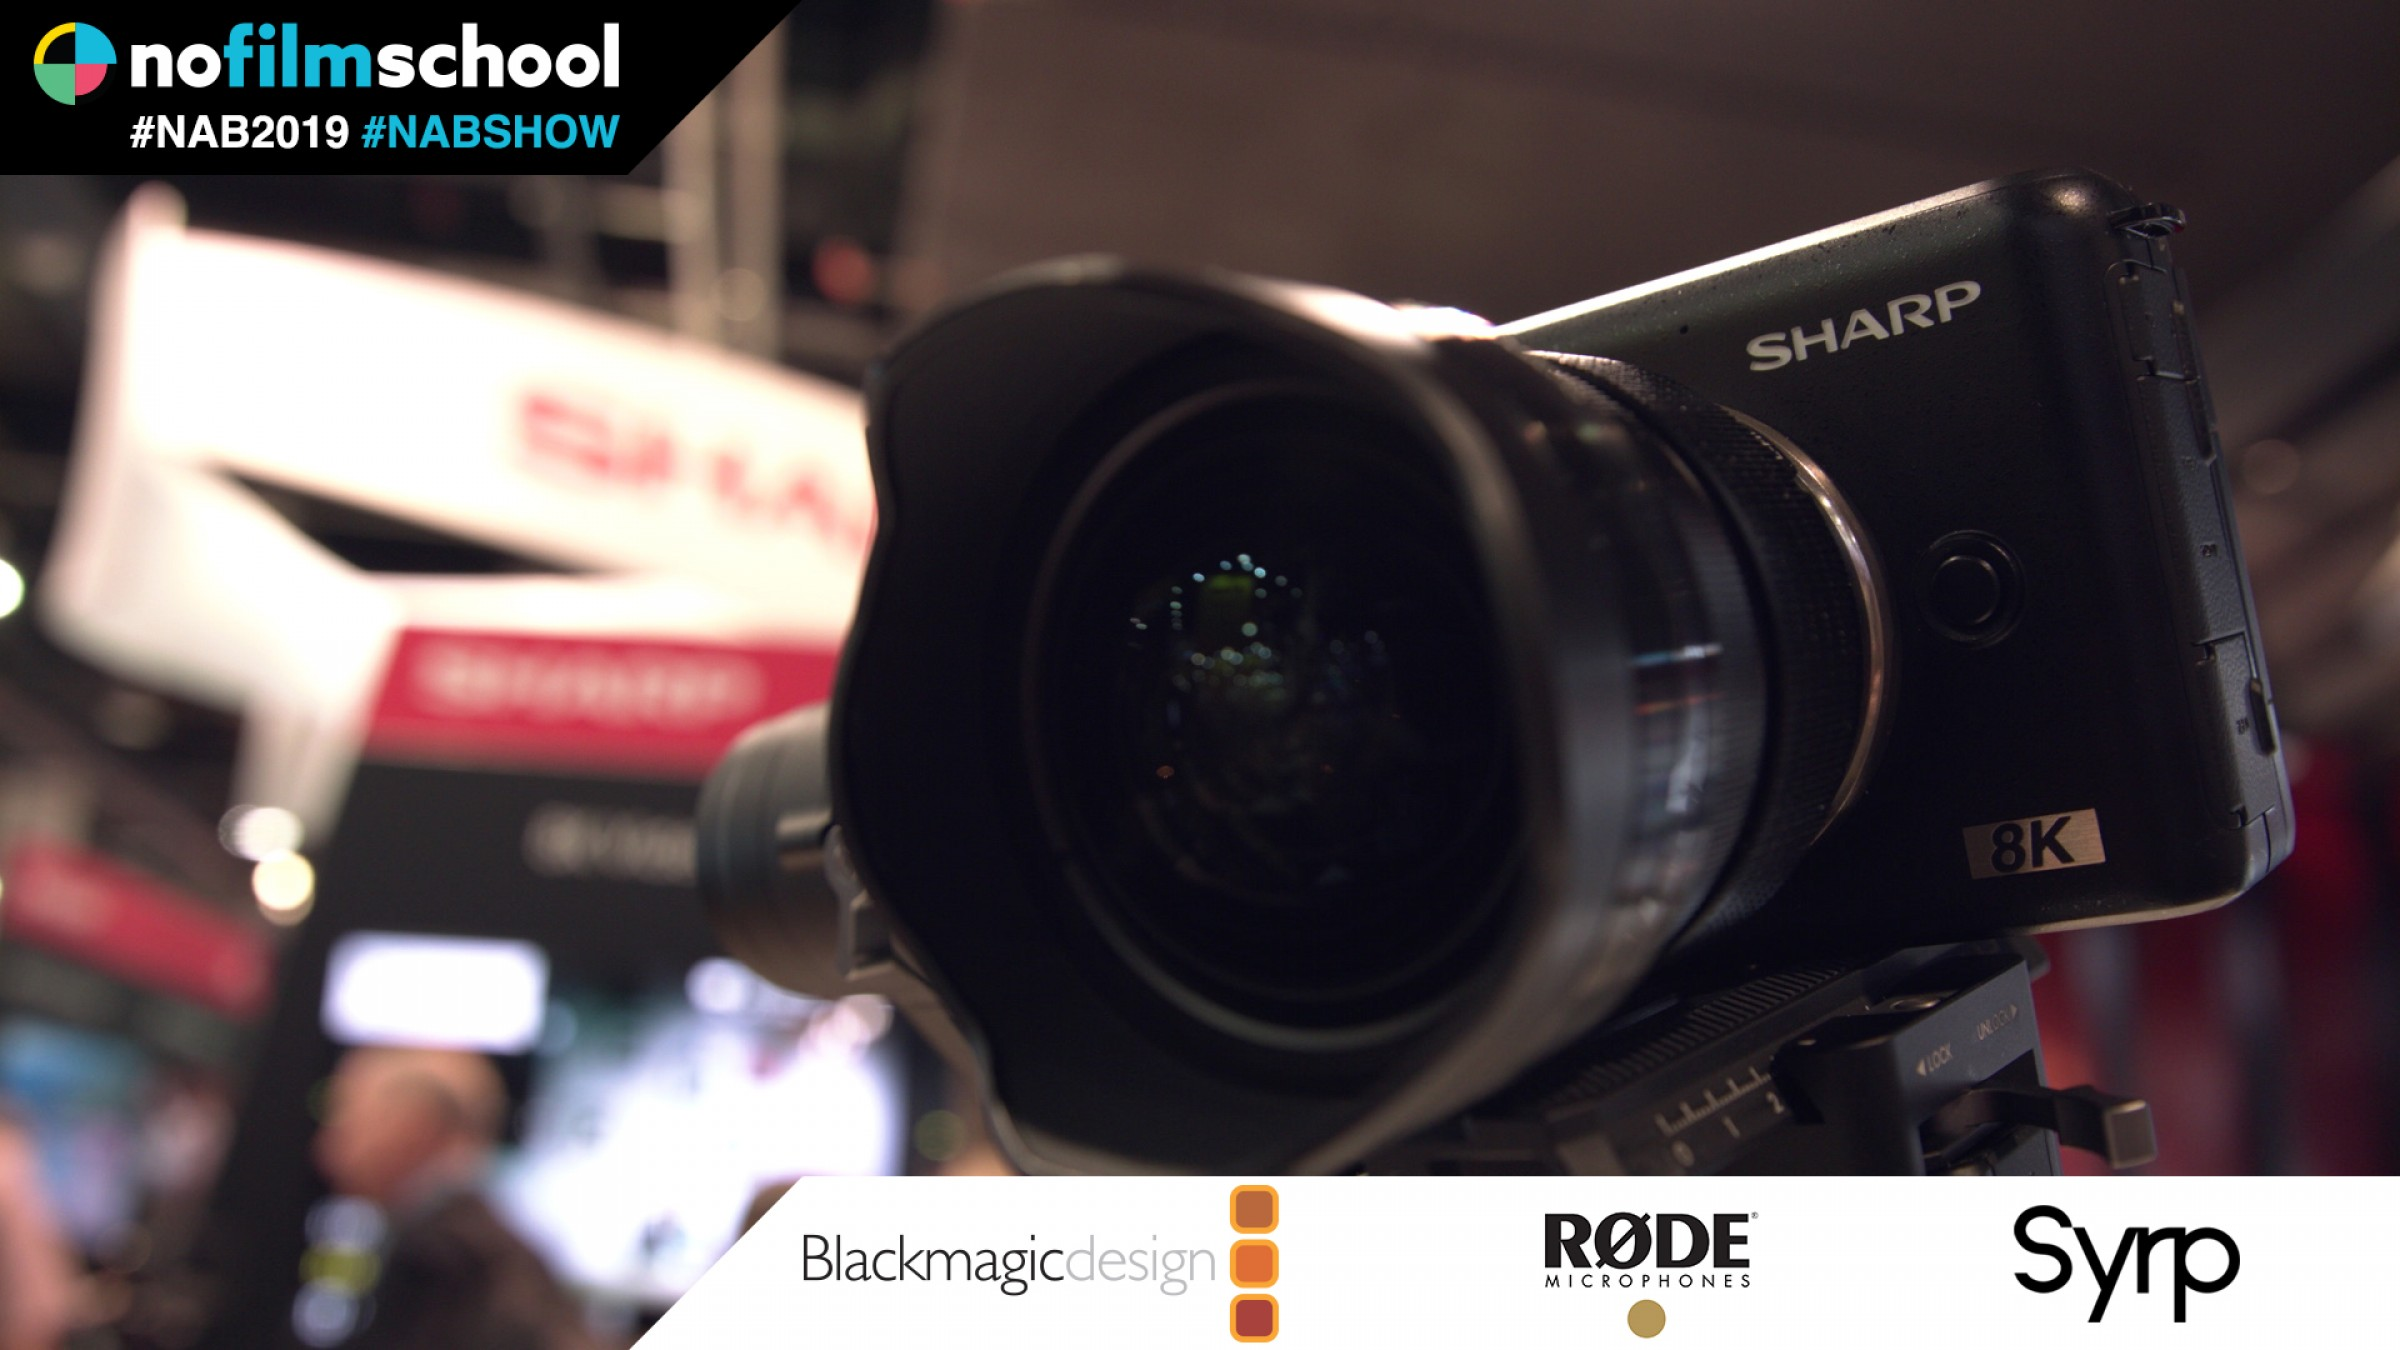 A Quick Look at Sharp's New 8K M/43 Camera for Under $4,000